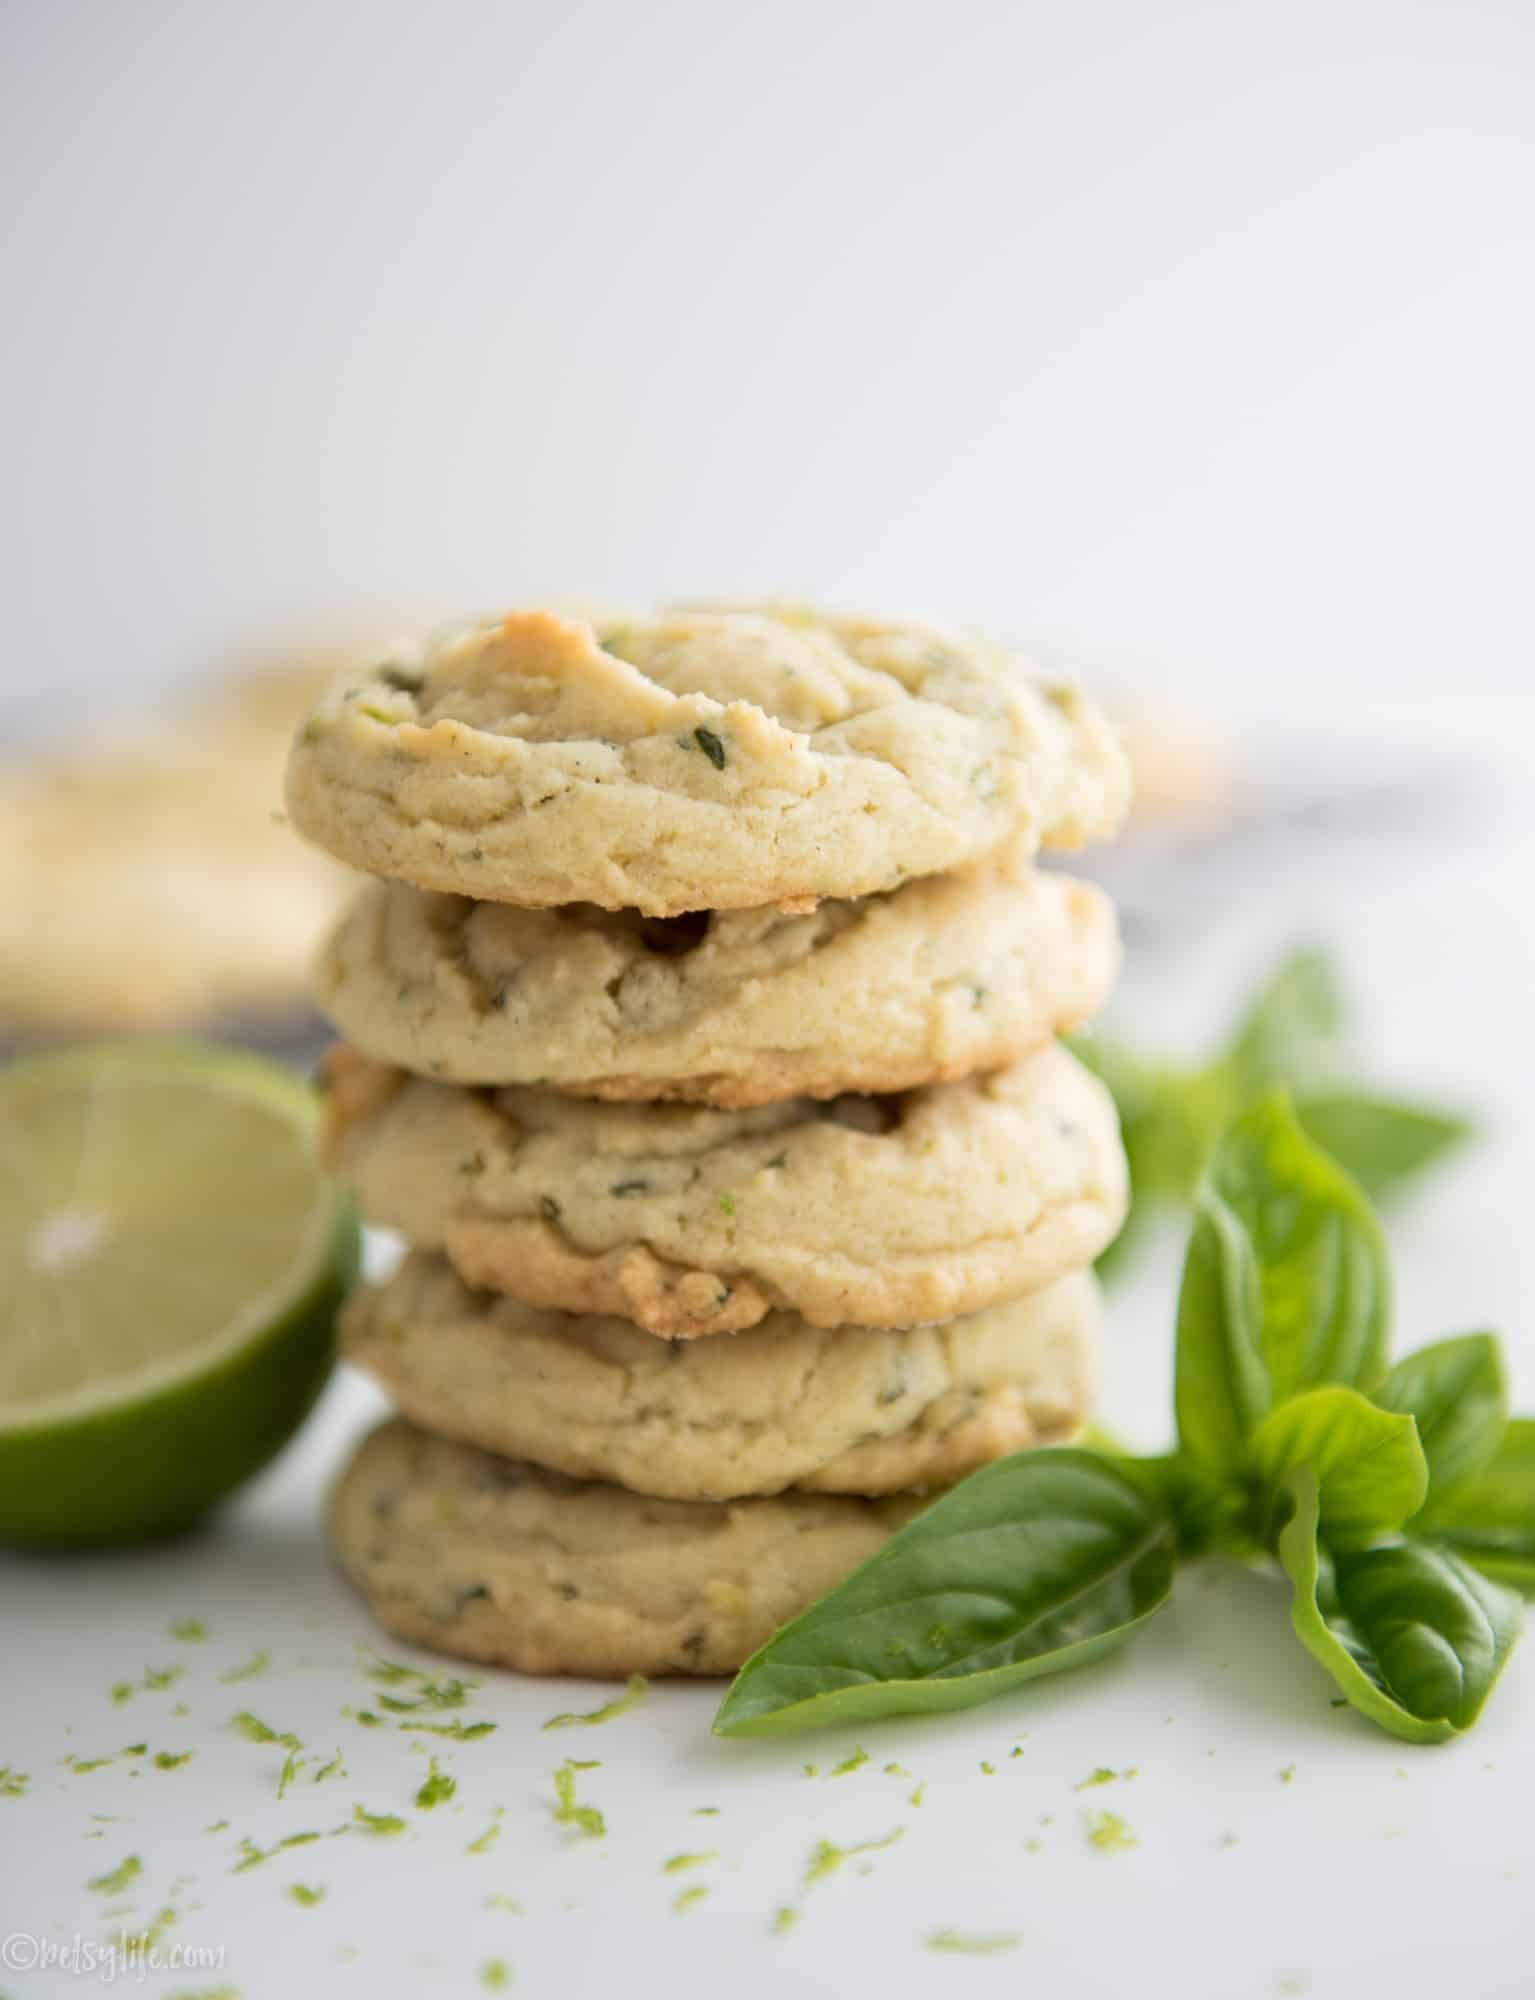 Stack of 5 basil lime sugar cookies with half a lime and a sprig of basil on the side